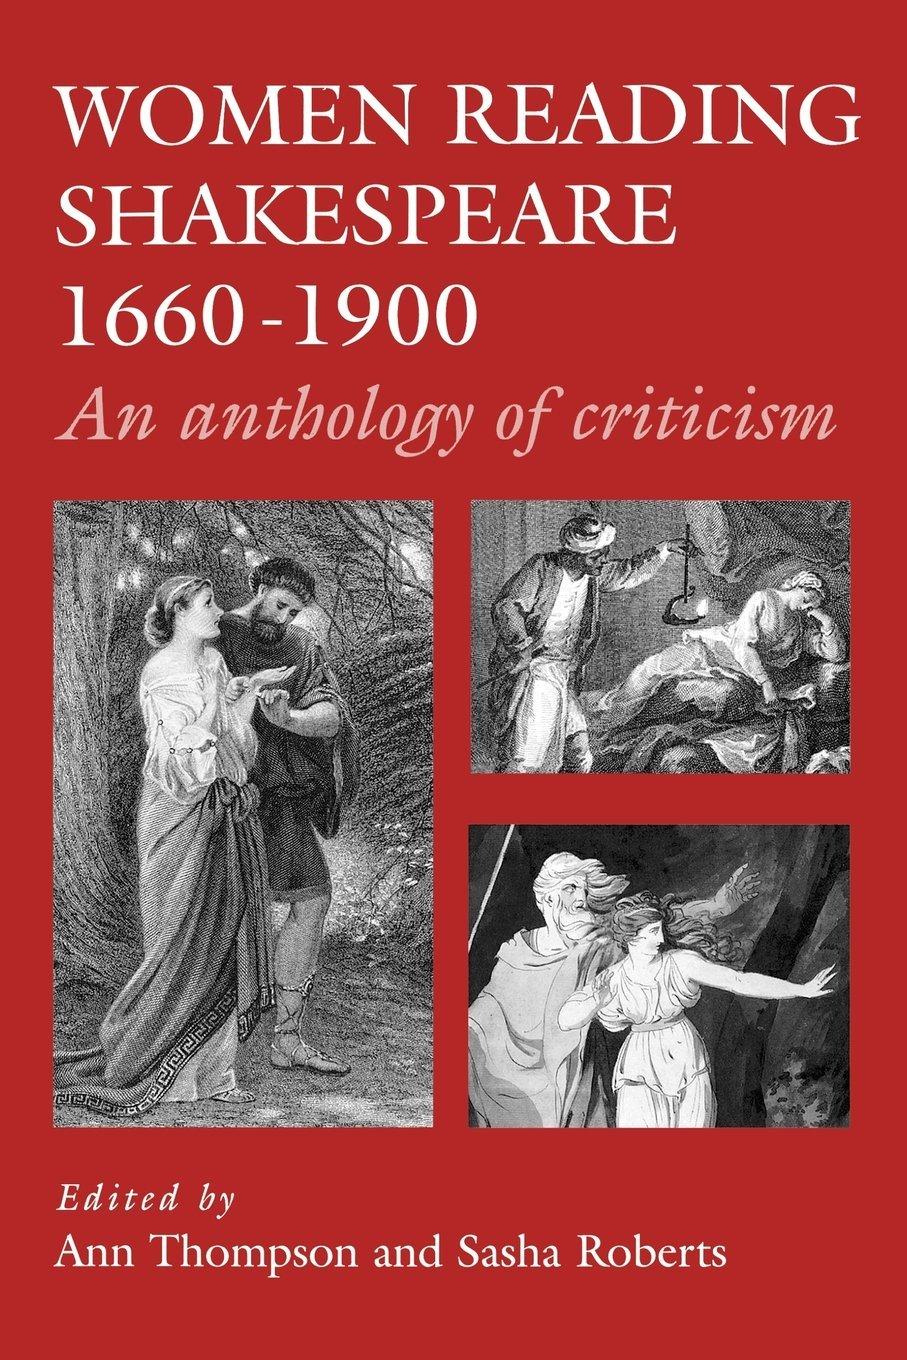 critical essays on shakespeares hamlet Shakespeare in mla format hamlet stabs polonius schwartz, murray m and coppélia kahn, eds representing shakespeare: new psychoanalytic essays.